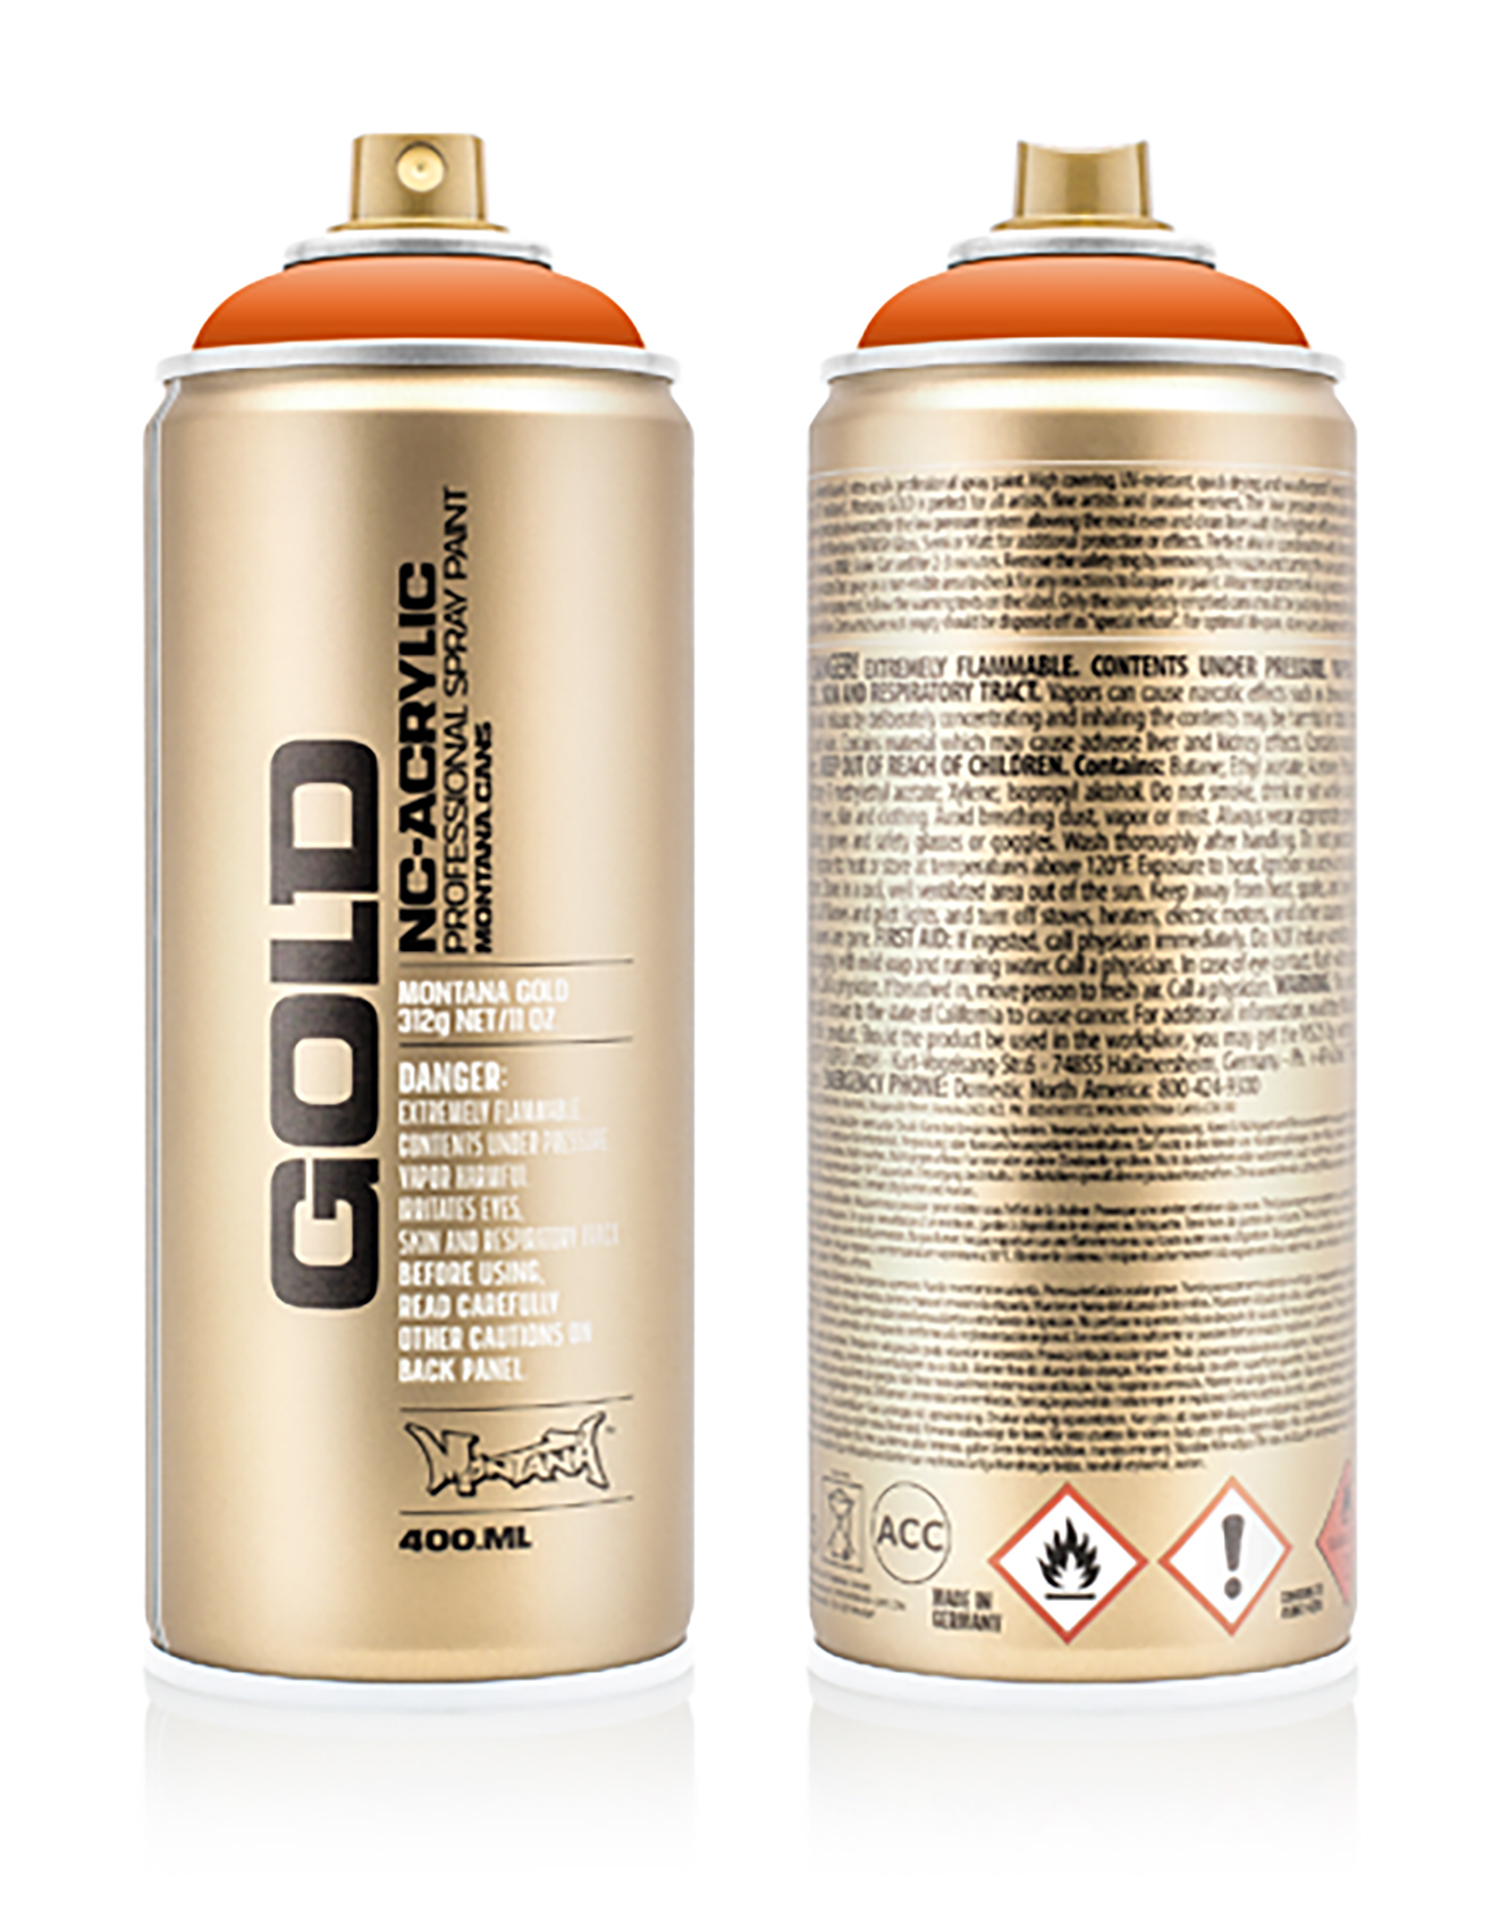 MONTANA-GOLD-SPRAY-400ML-G-2080